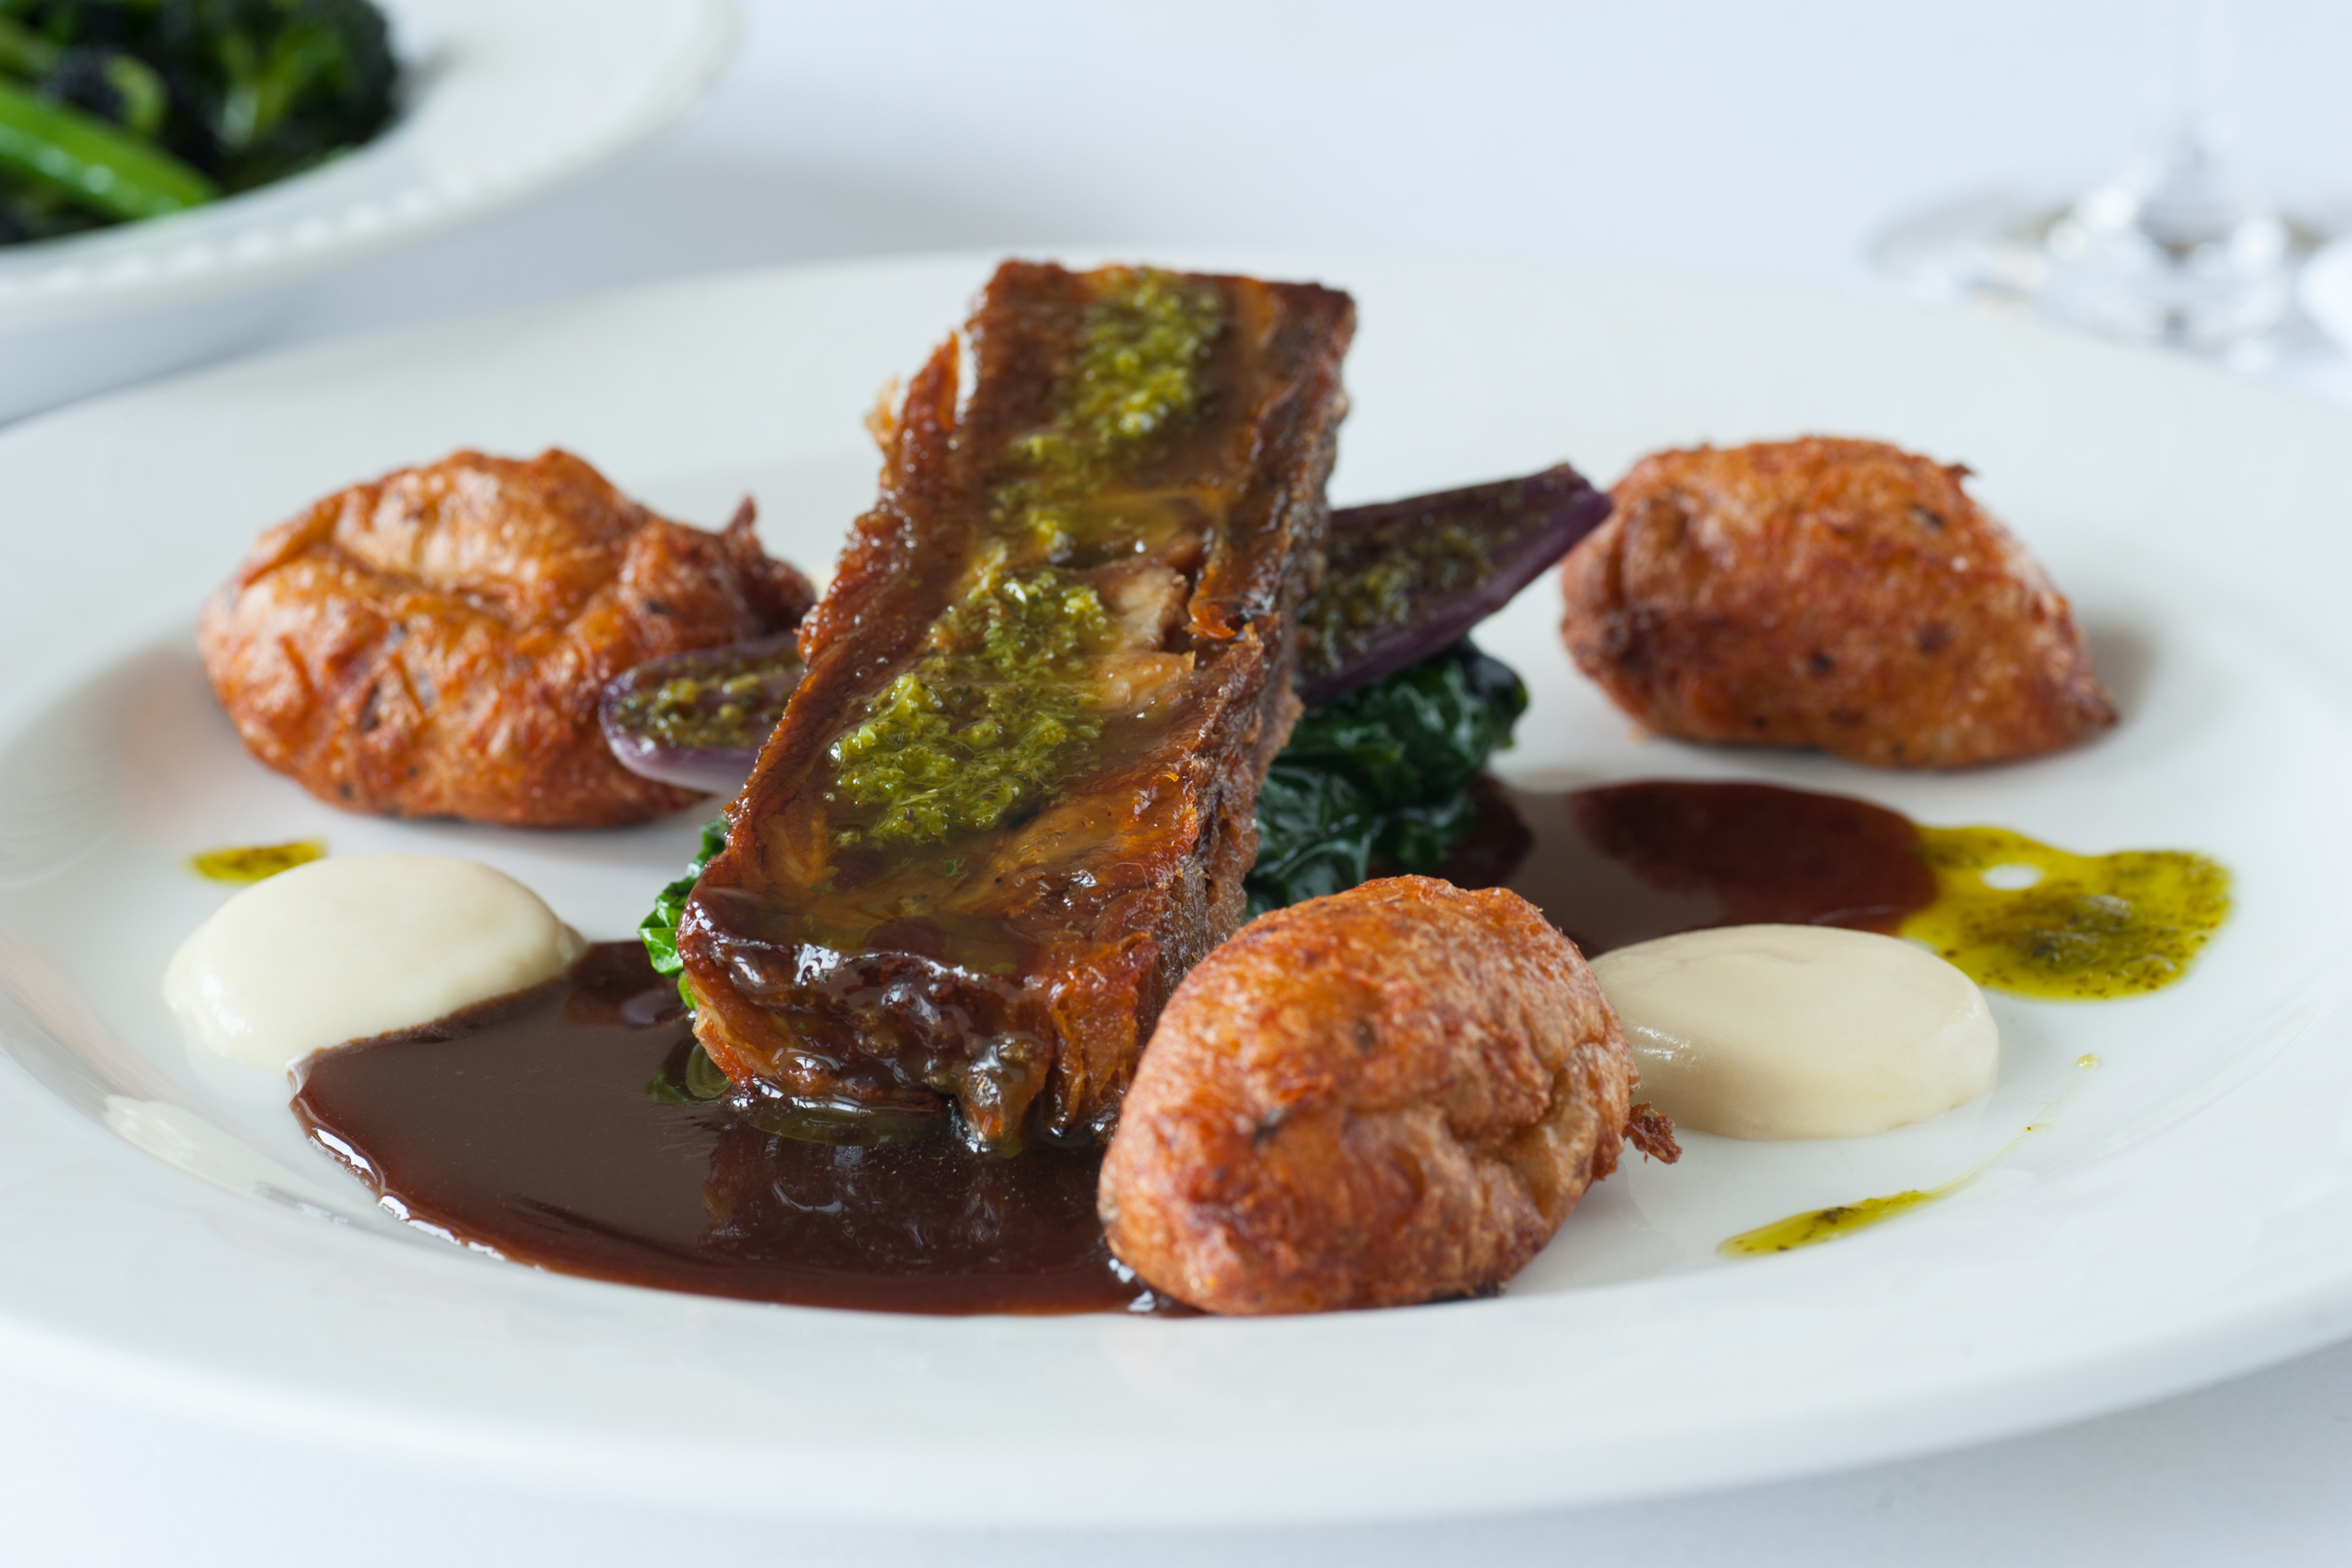 Harcourts Restaurant at Deans Place Hotel - East Sussex